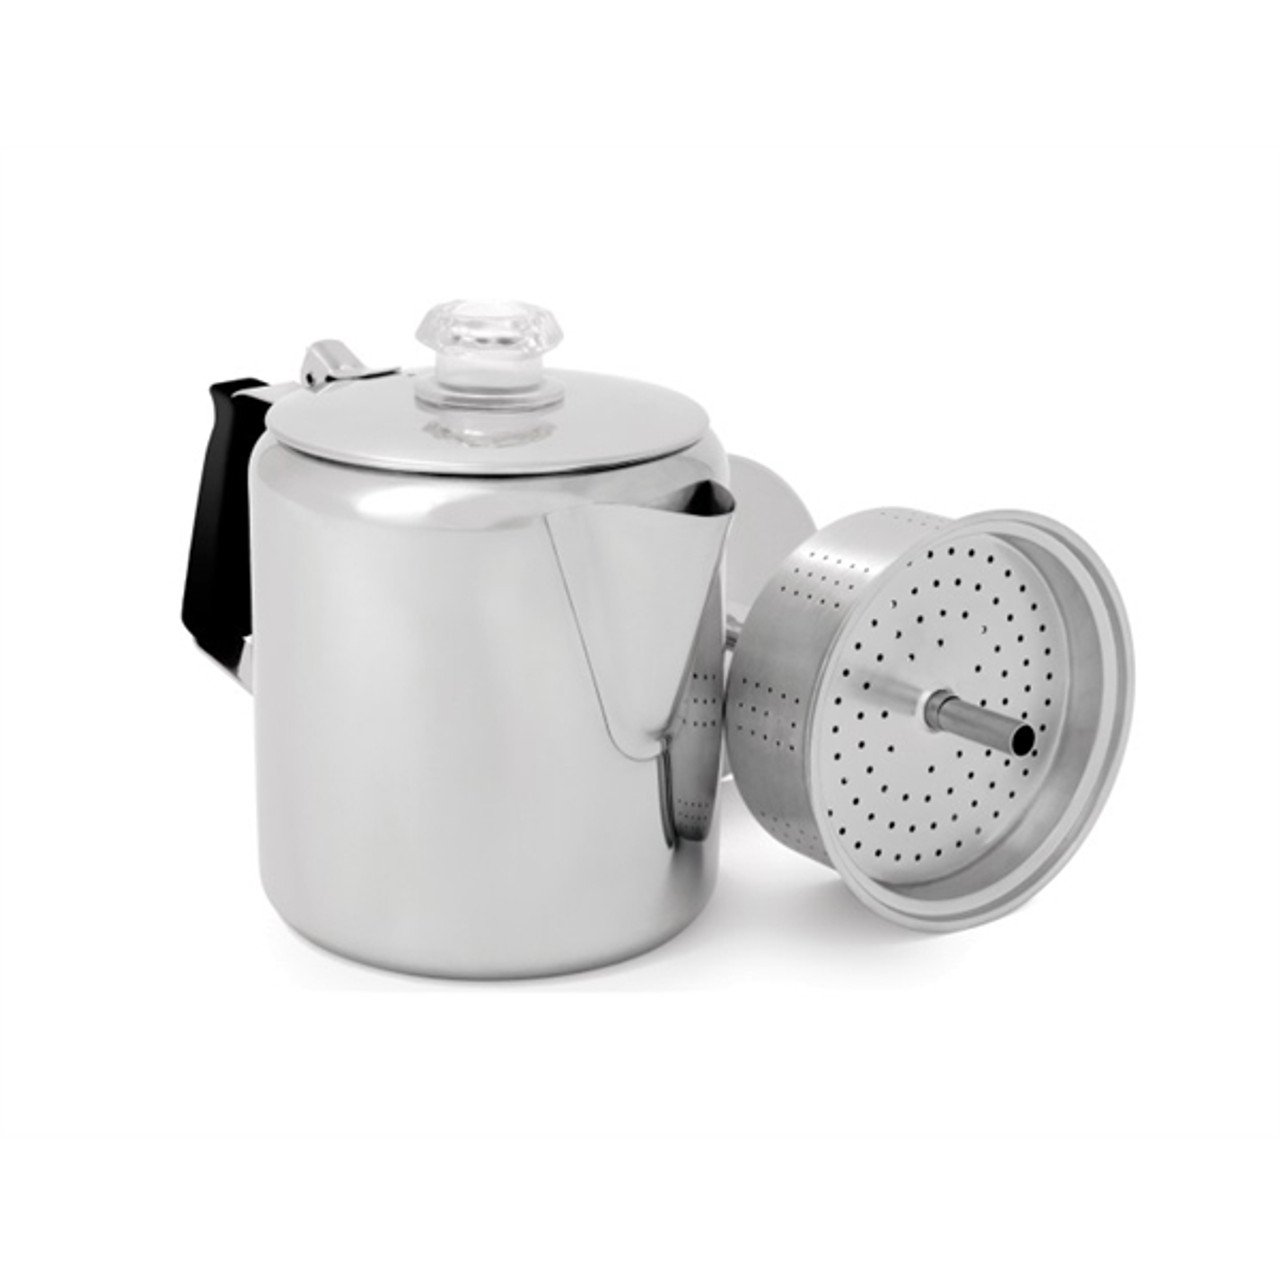 GSI Percolator 6 Cup @https://www.mountainmailorder.co.za/